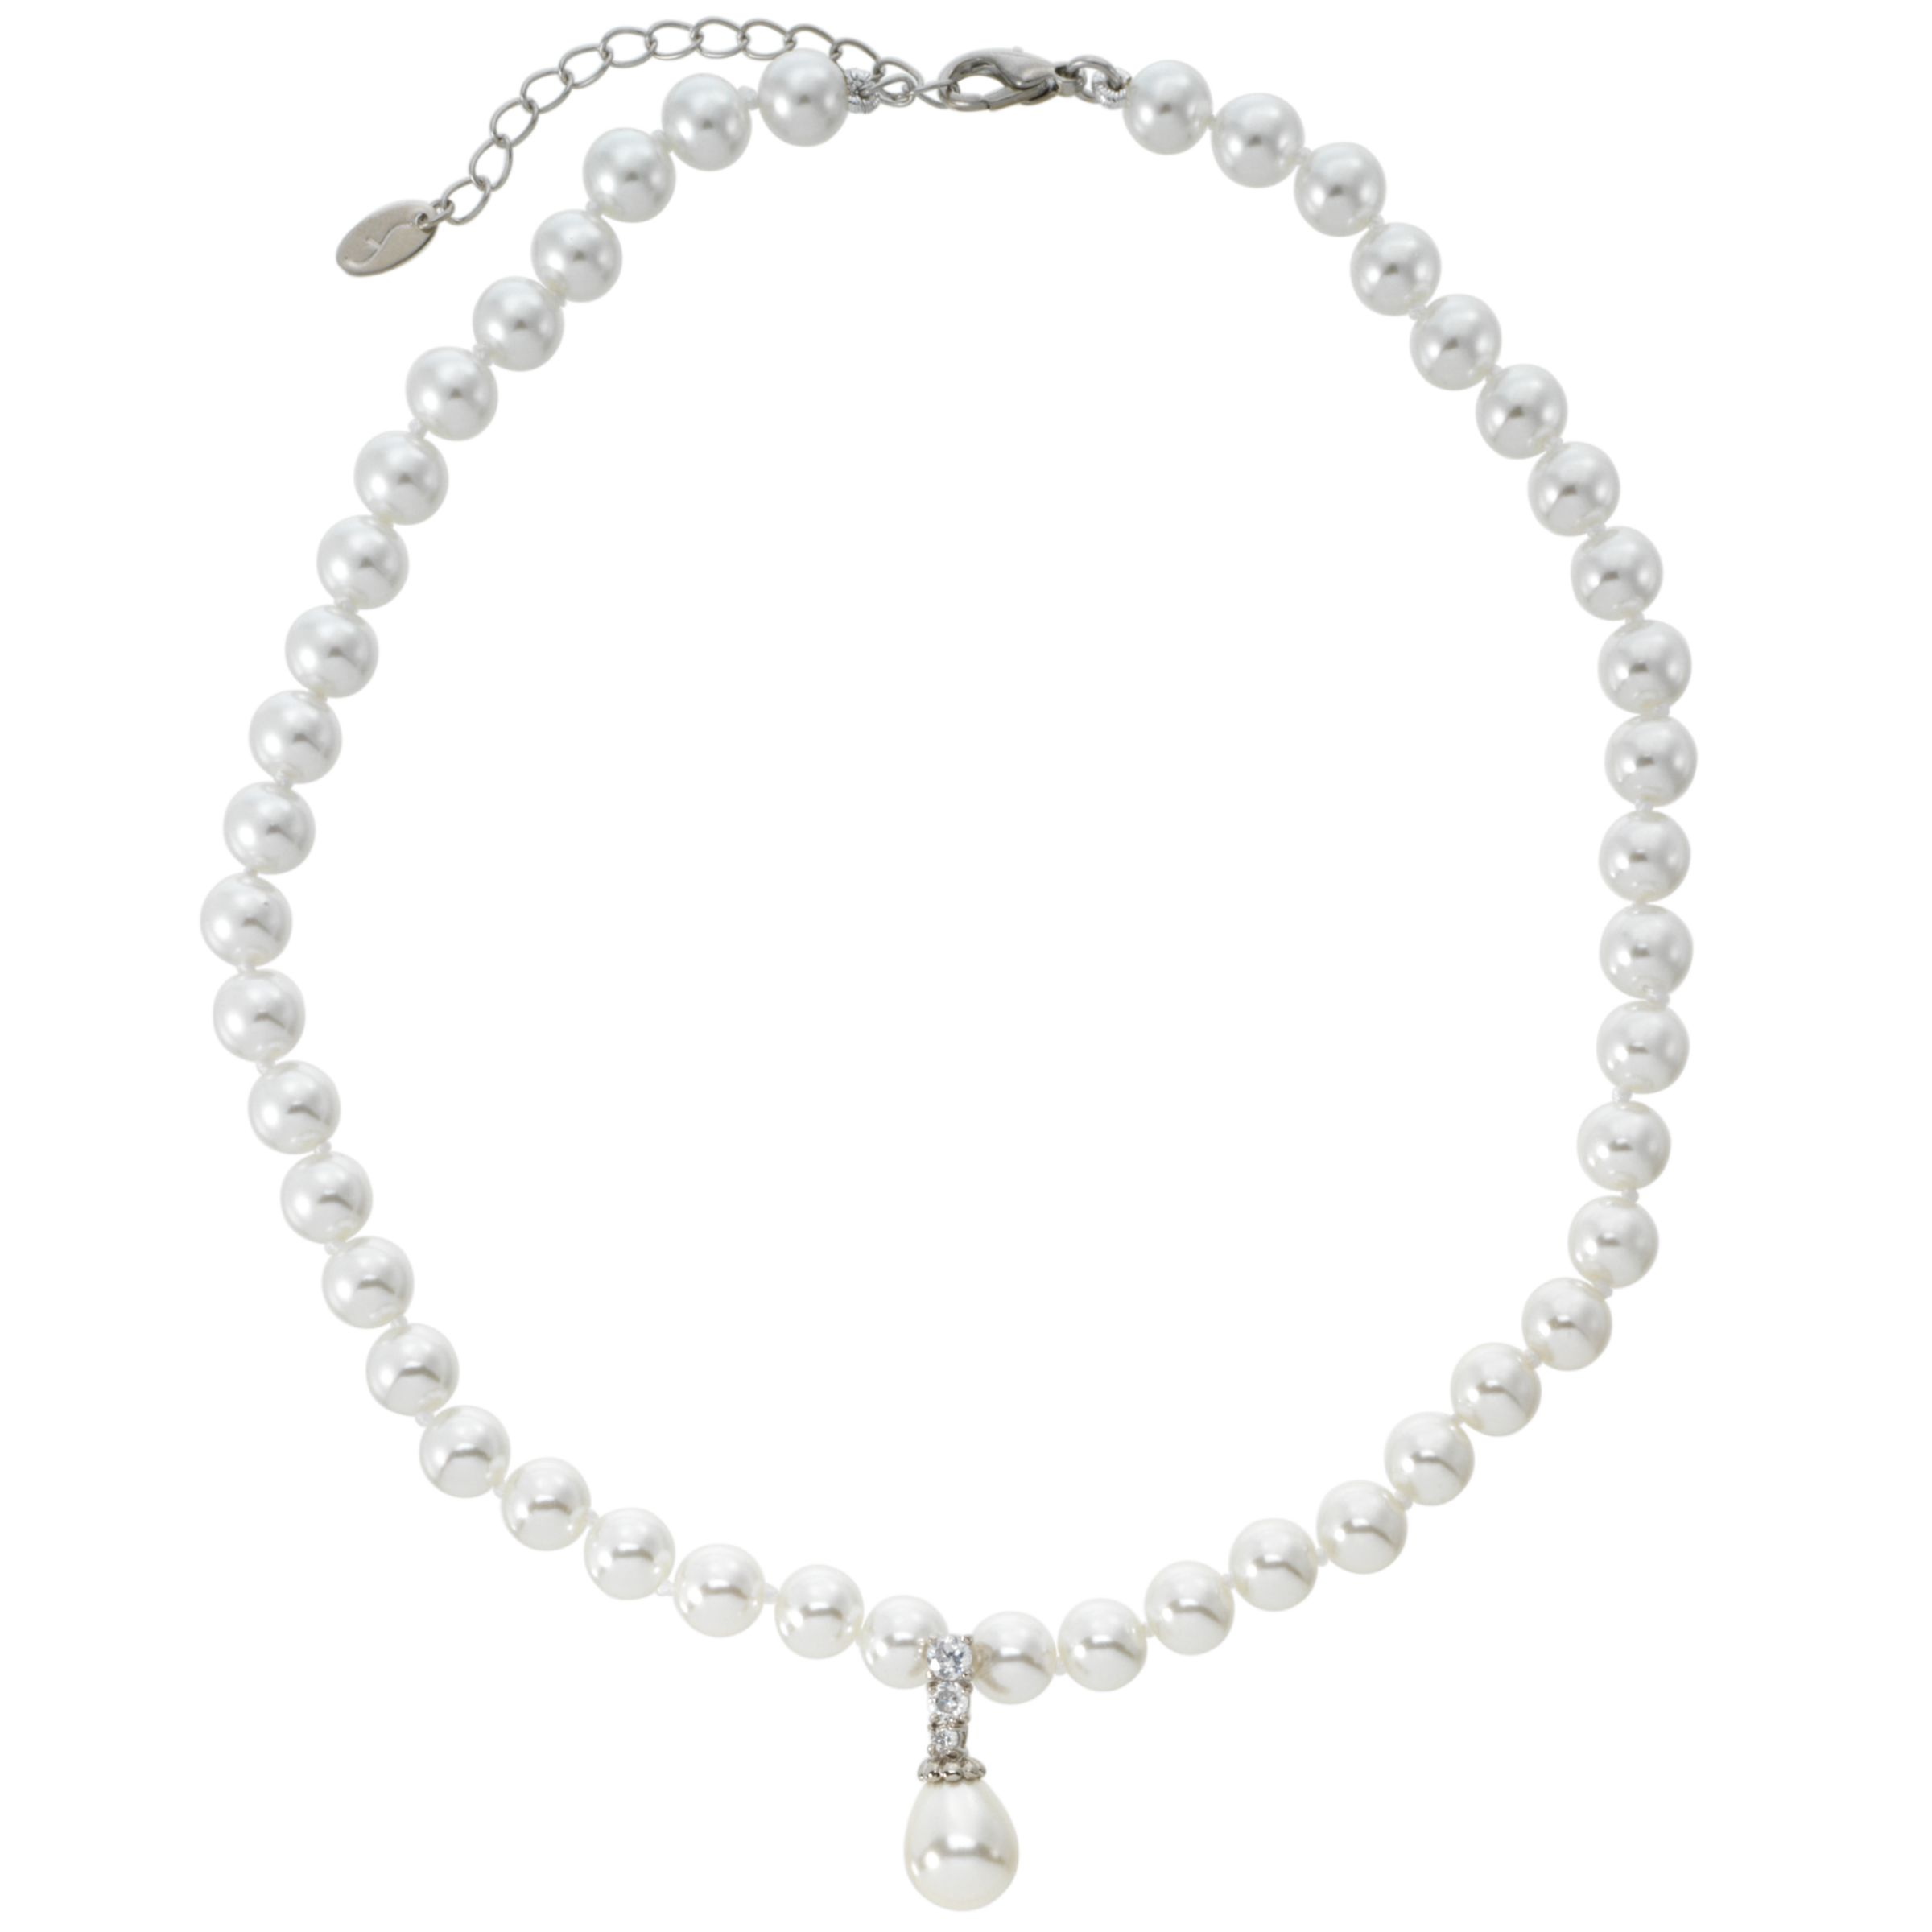 Finesse Simulated Pearl Necklace with Cubic Zirconia and Teardrop Pendant